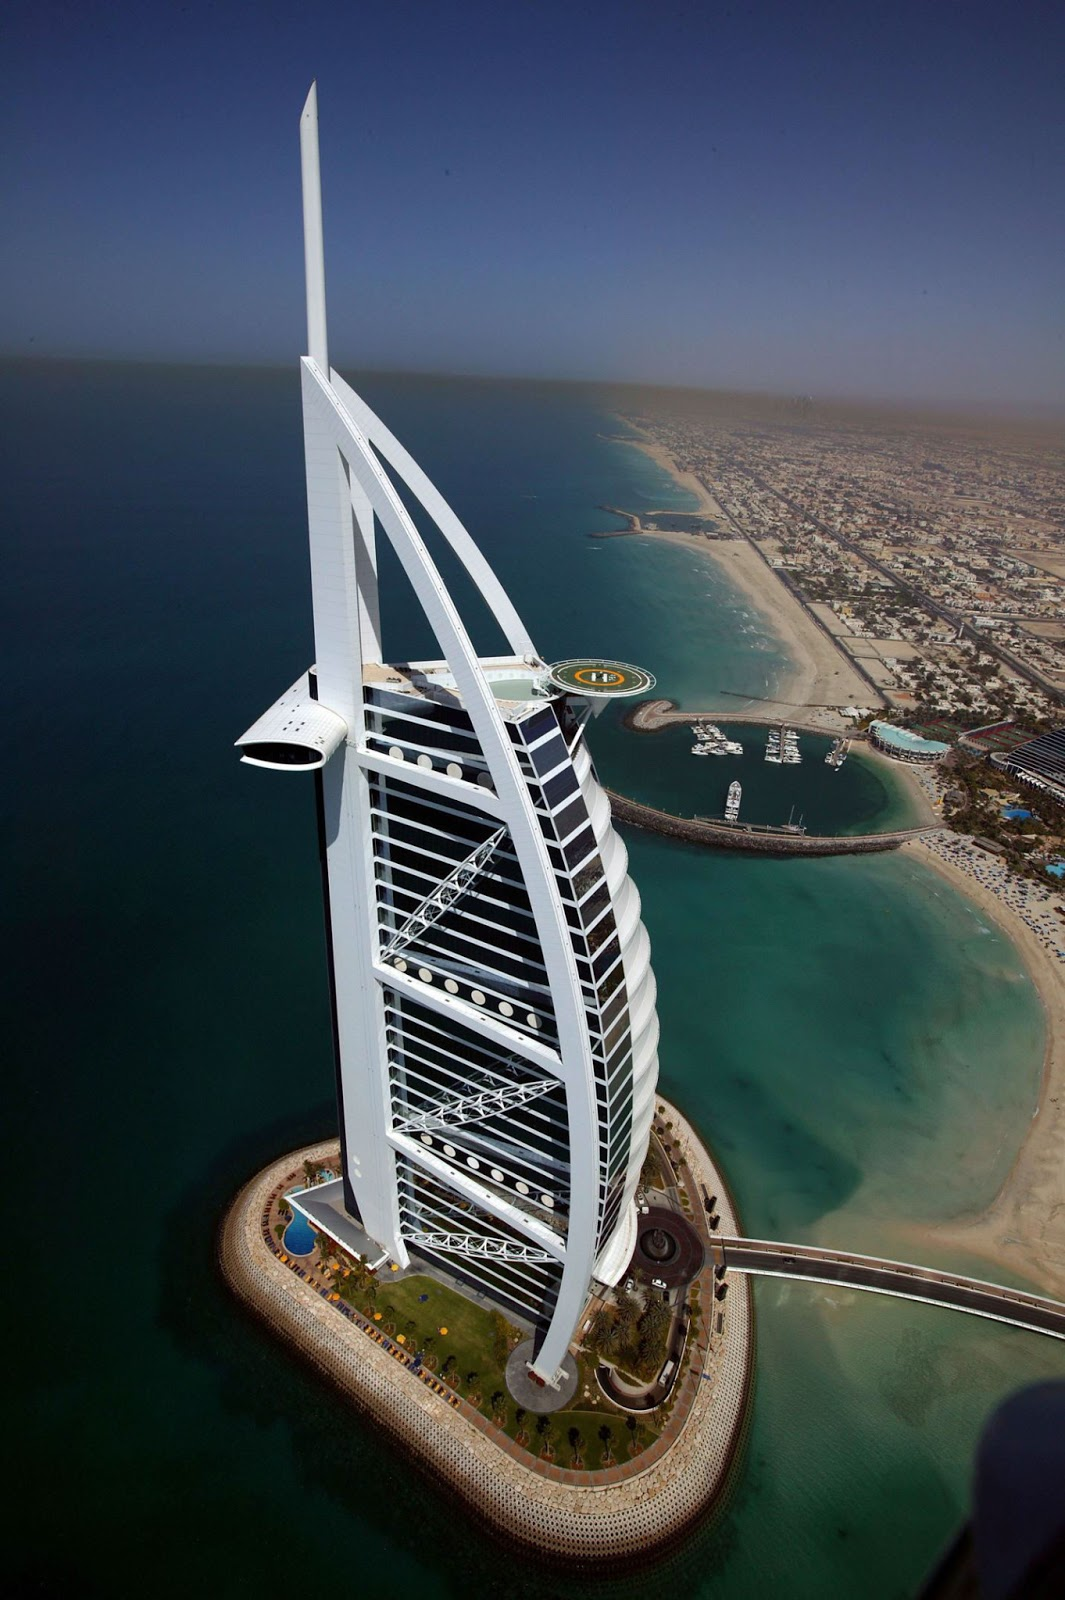 Text From Dubai Architecture